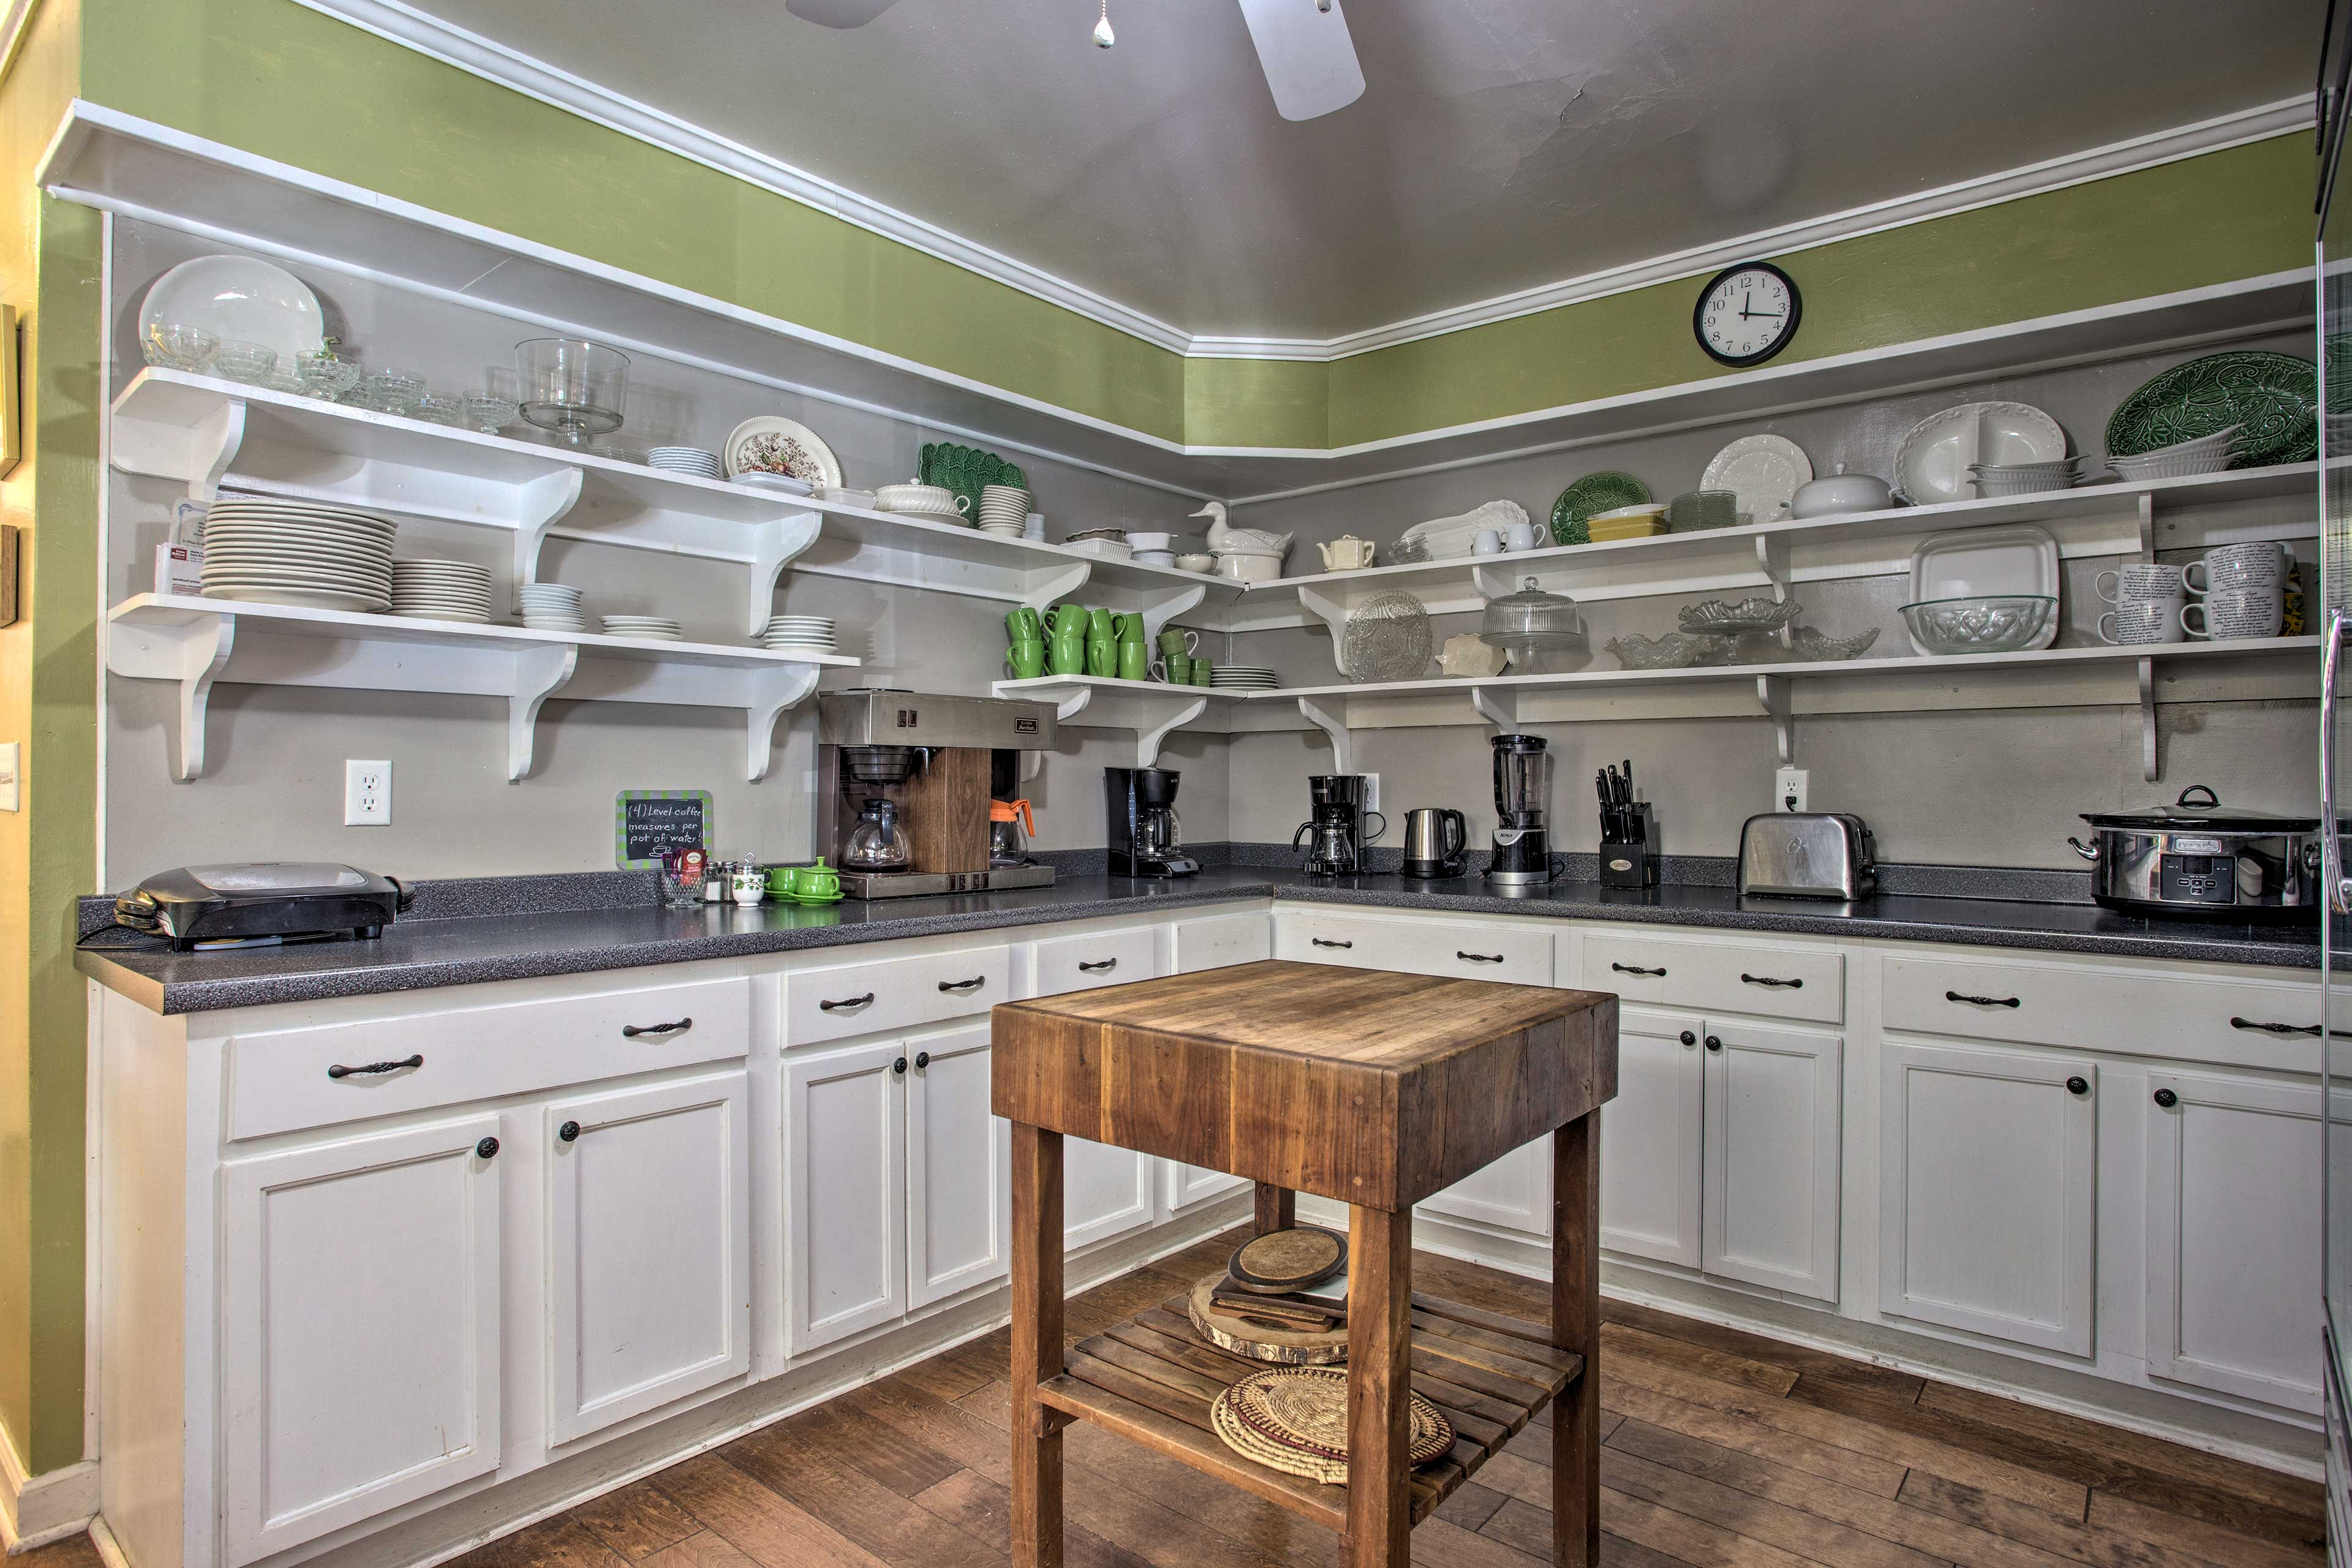 The kitchen is fully equipped with all you need for your favorite recipes.